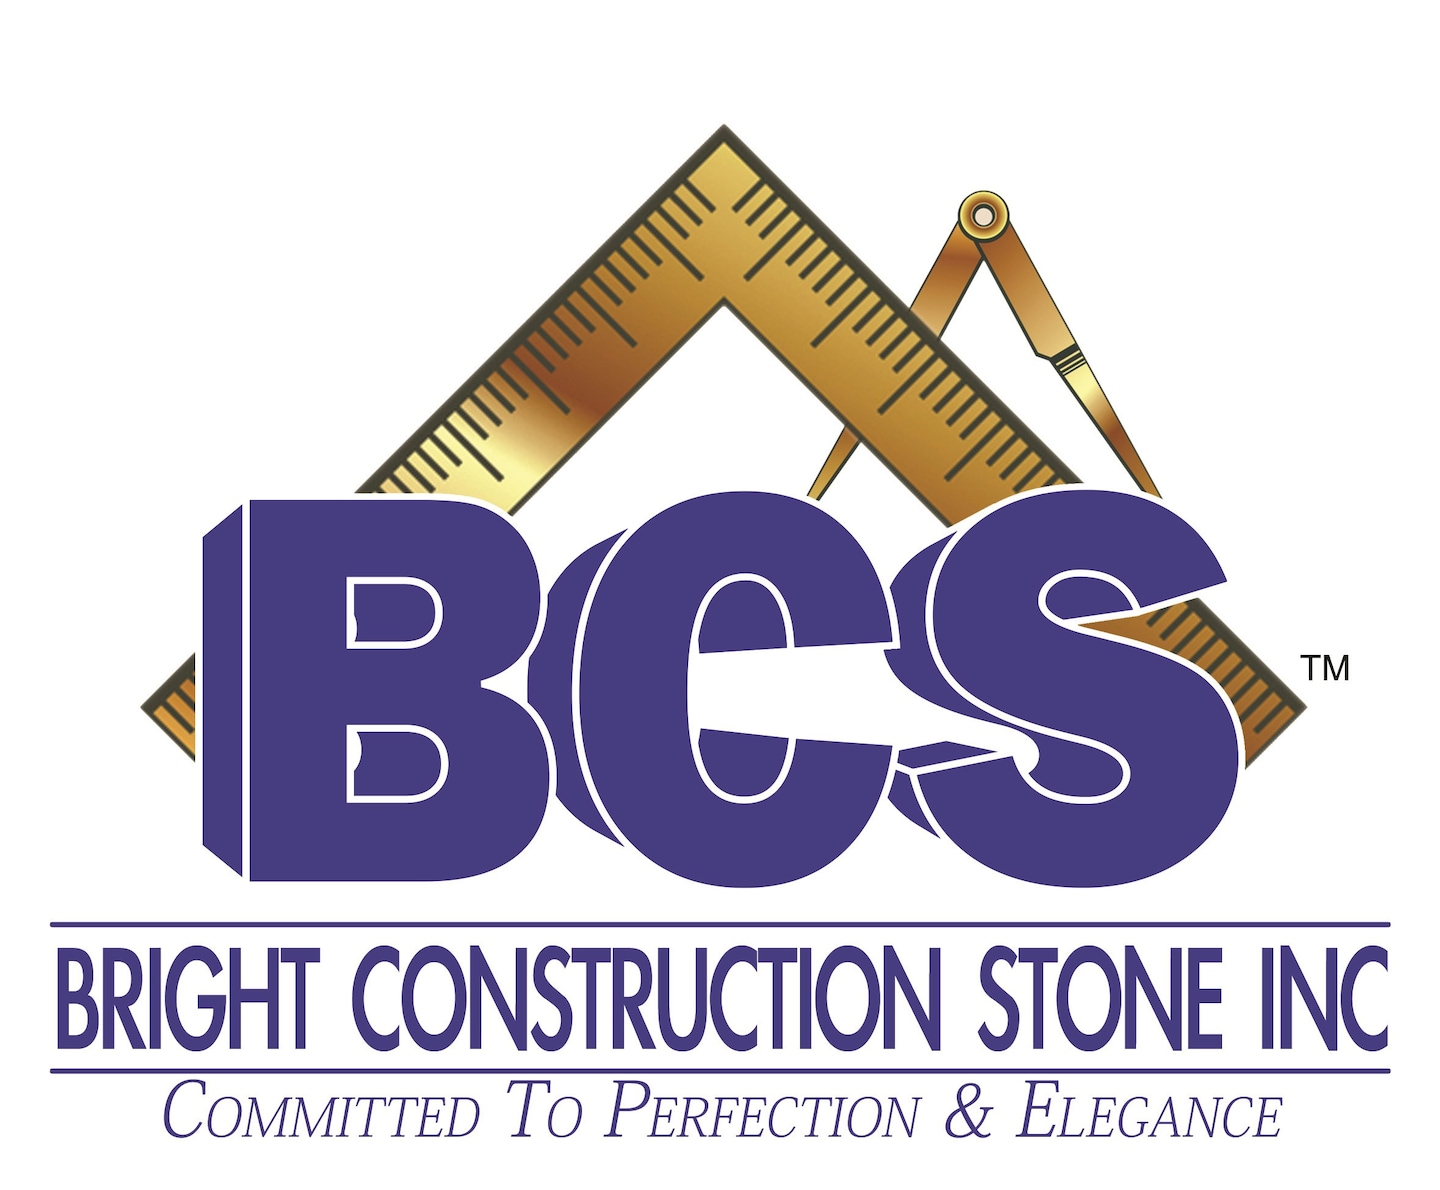 Bright Construction Stone Inc